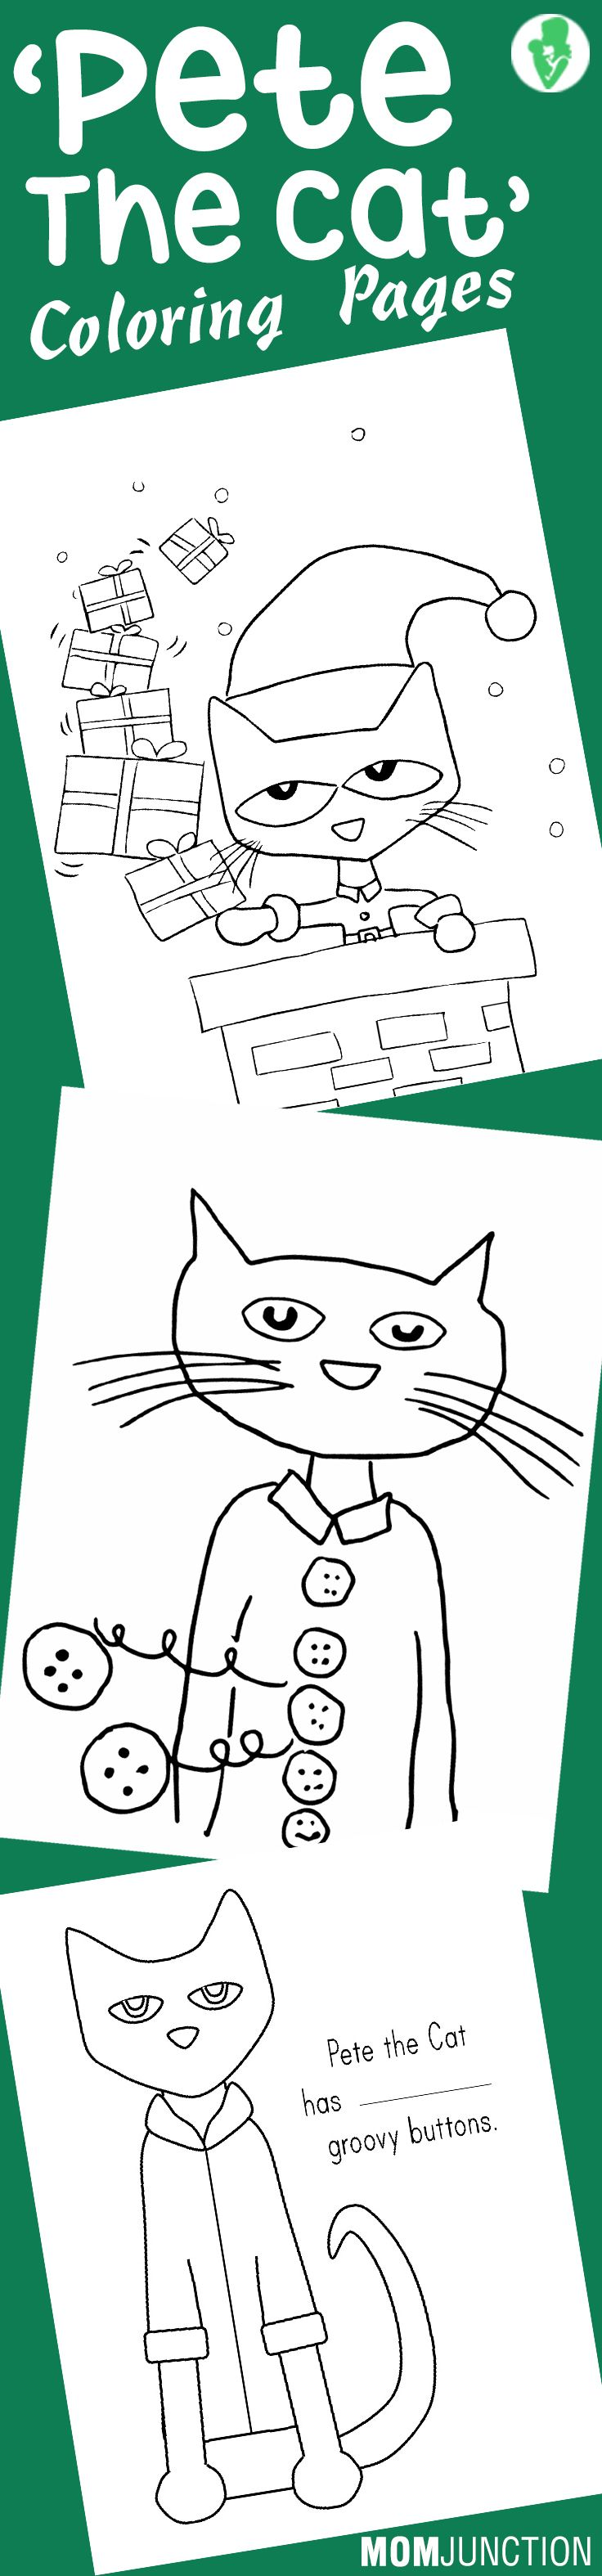 Top Free Printable Pete The Cat Coloring Pages Online Pete the